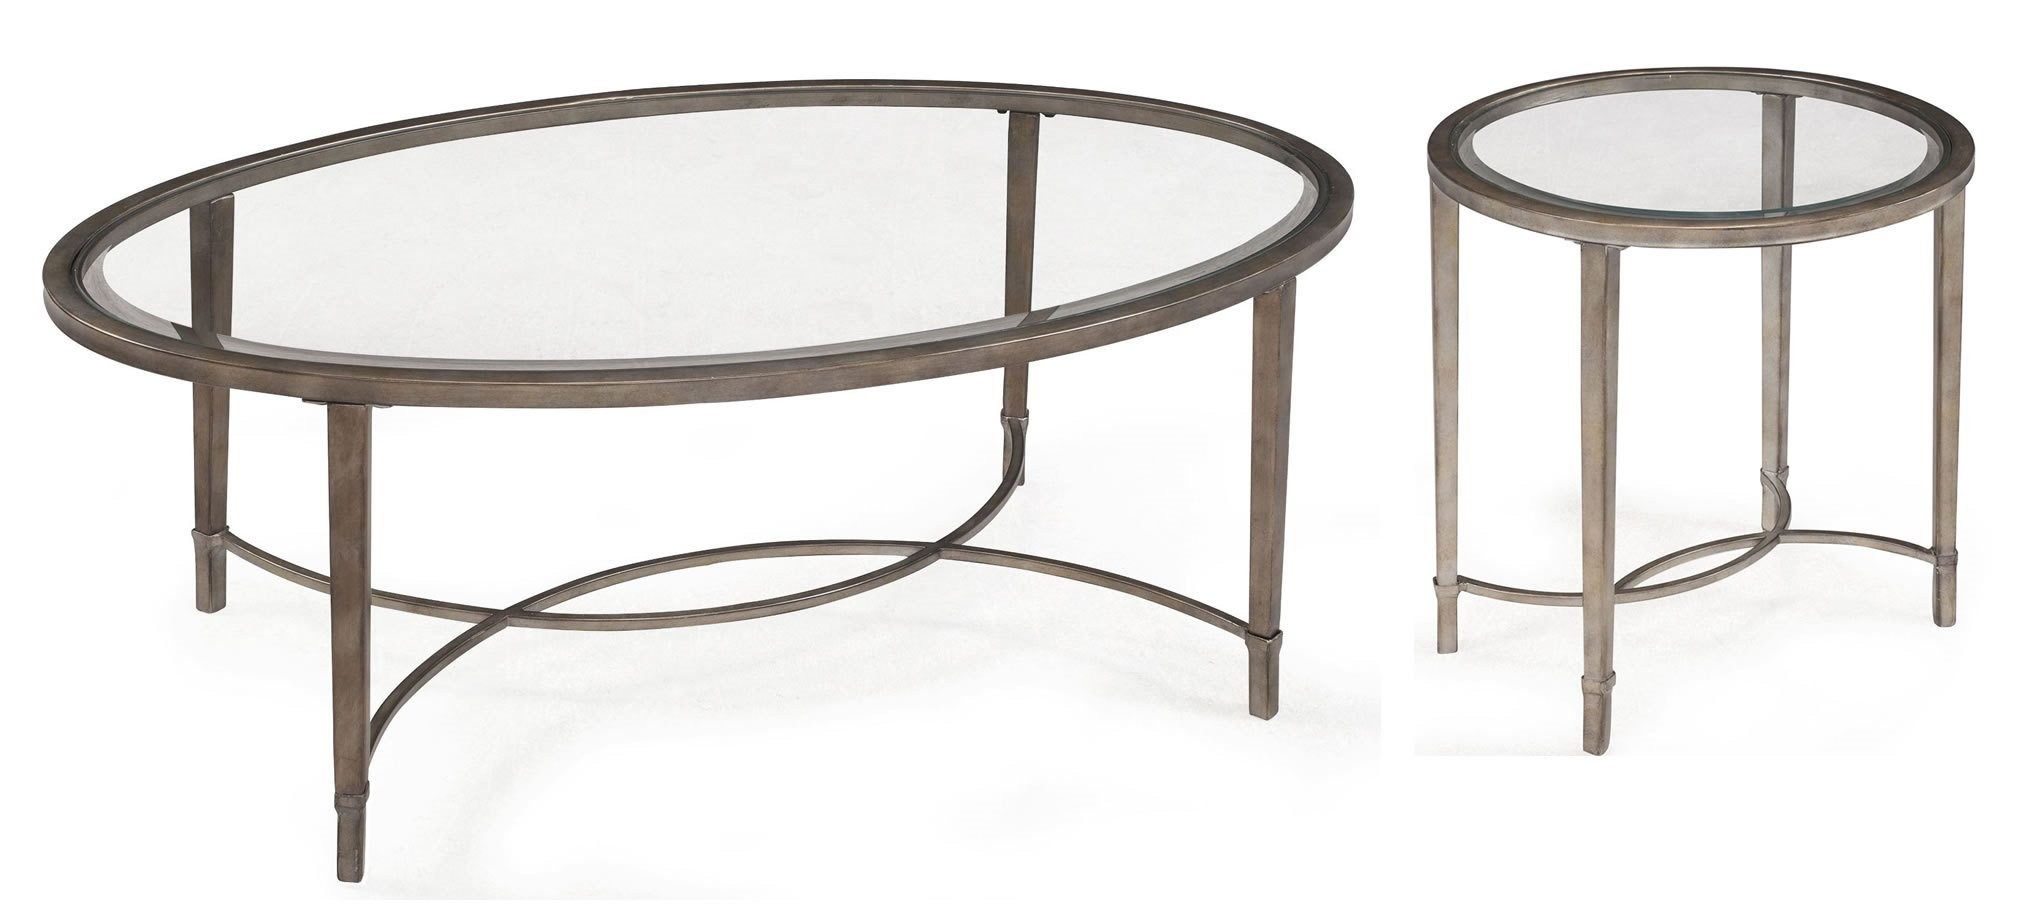 Copia oval cocktail table from magnussen home t2114 47 for Cocktail table 47